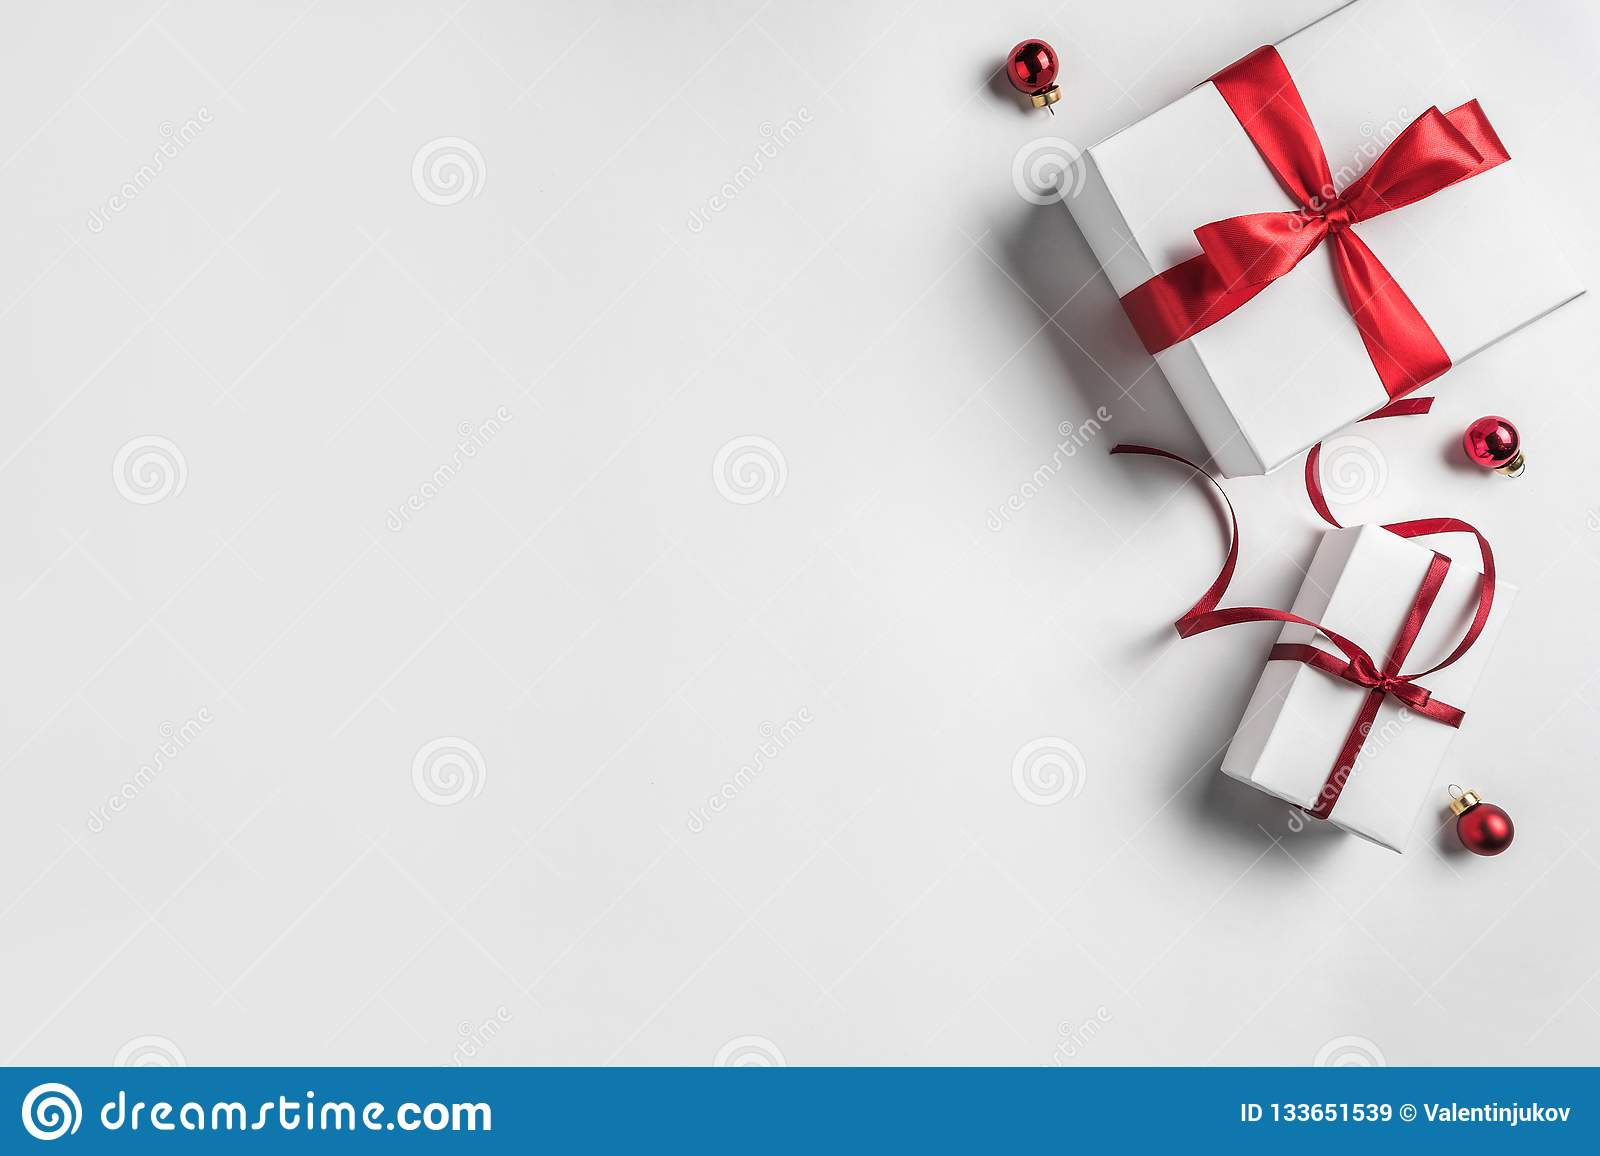 Christmas gift boxes with red ribbon and decoration on white background. Xmas and Happy New Year theme.